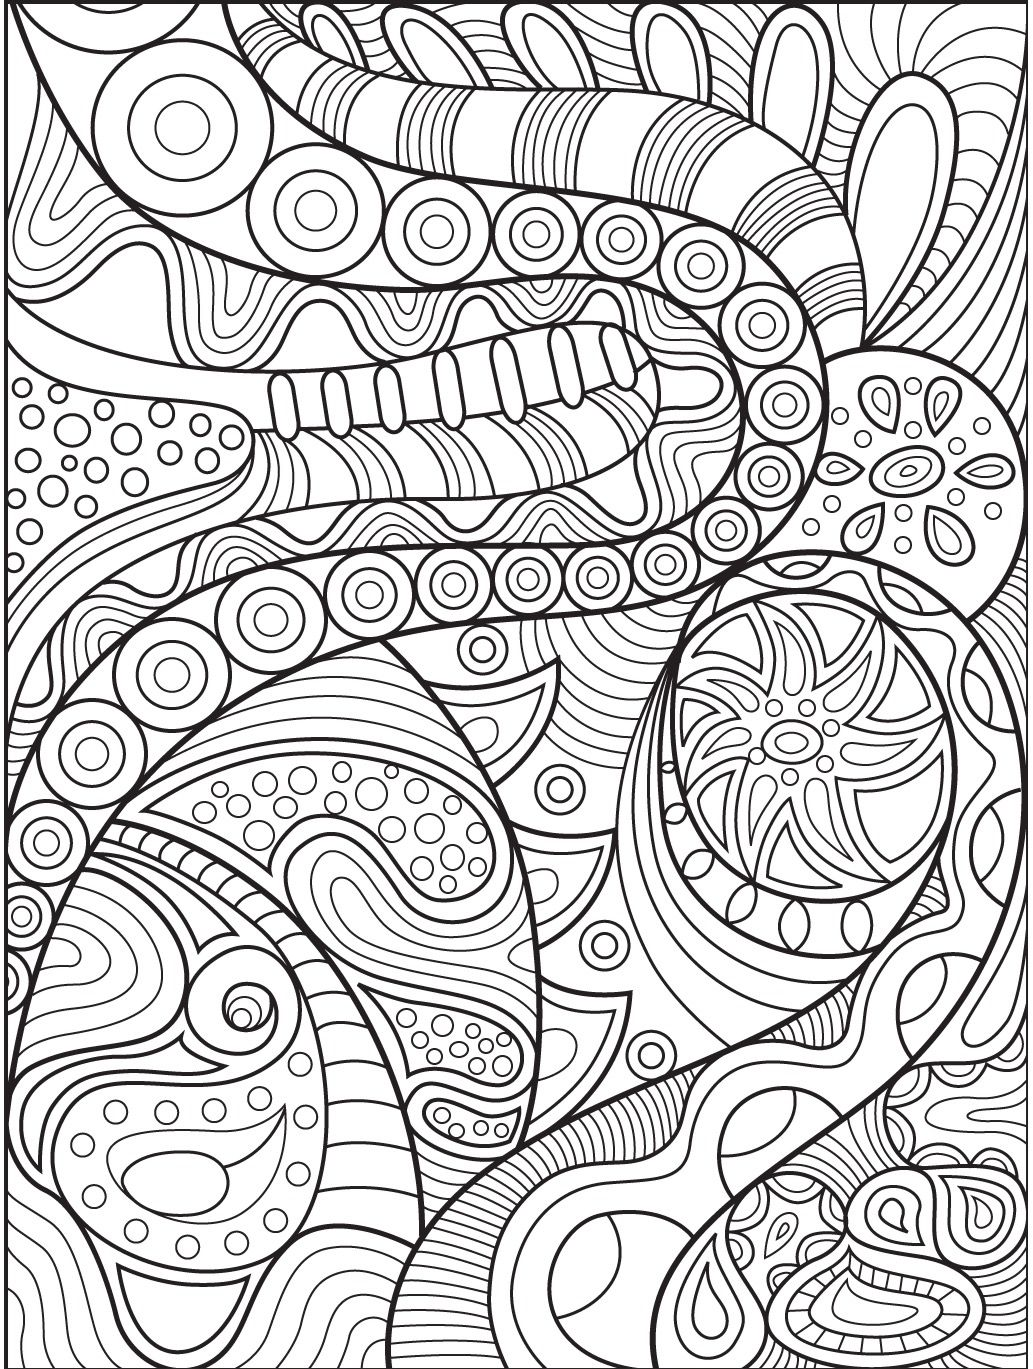 Abstract coloring page on Colorish: coloring book app for adults by ...